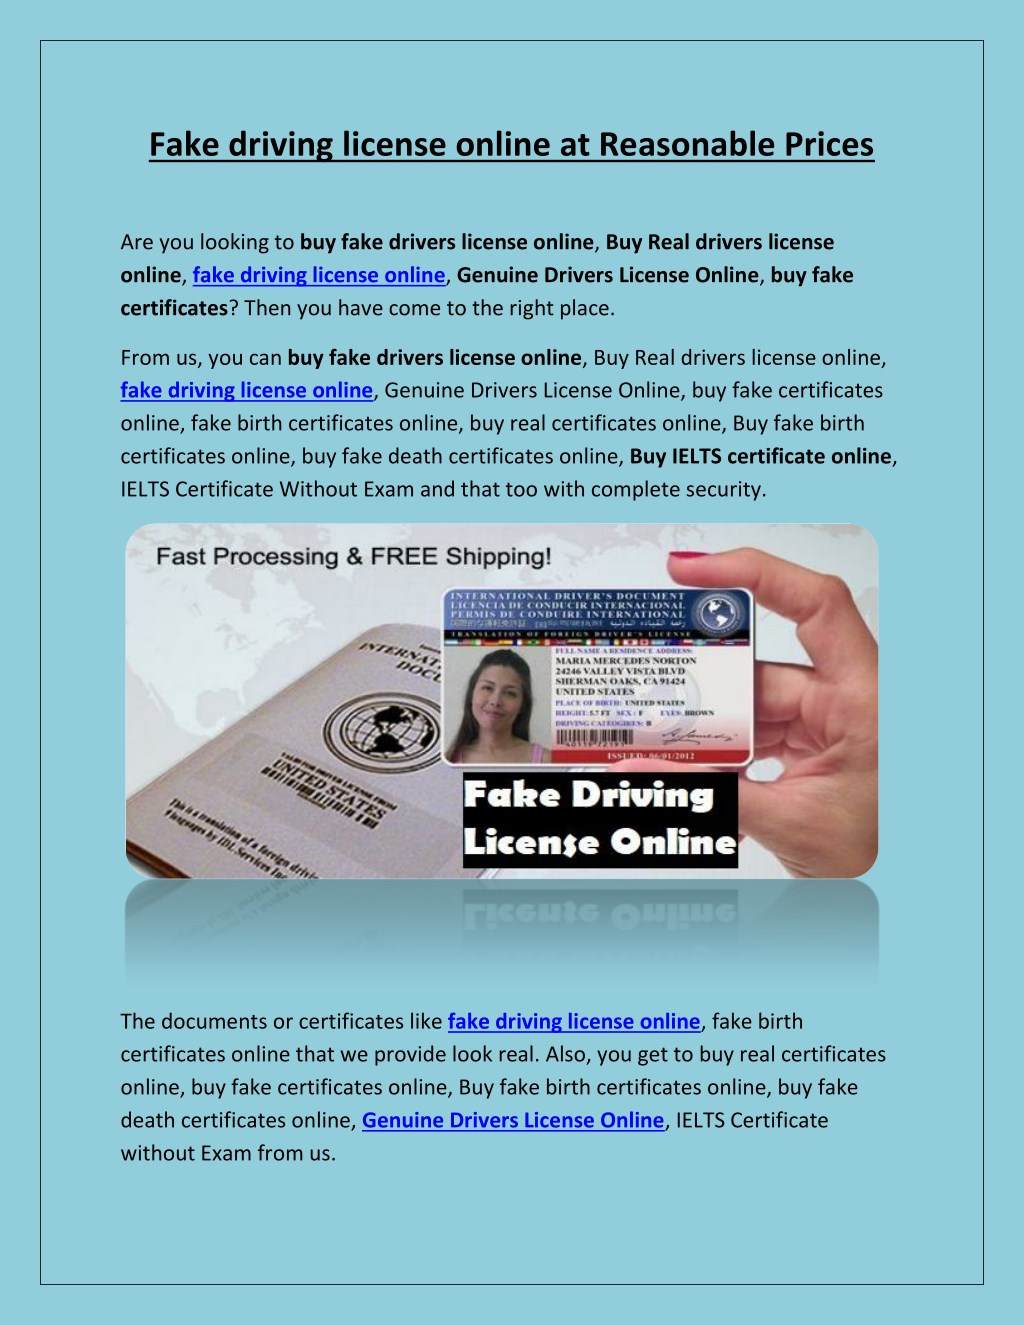 PPT - Fake driving license online at Reasonable Prices